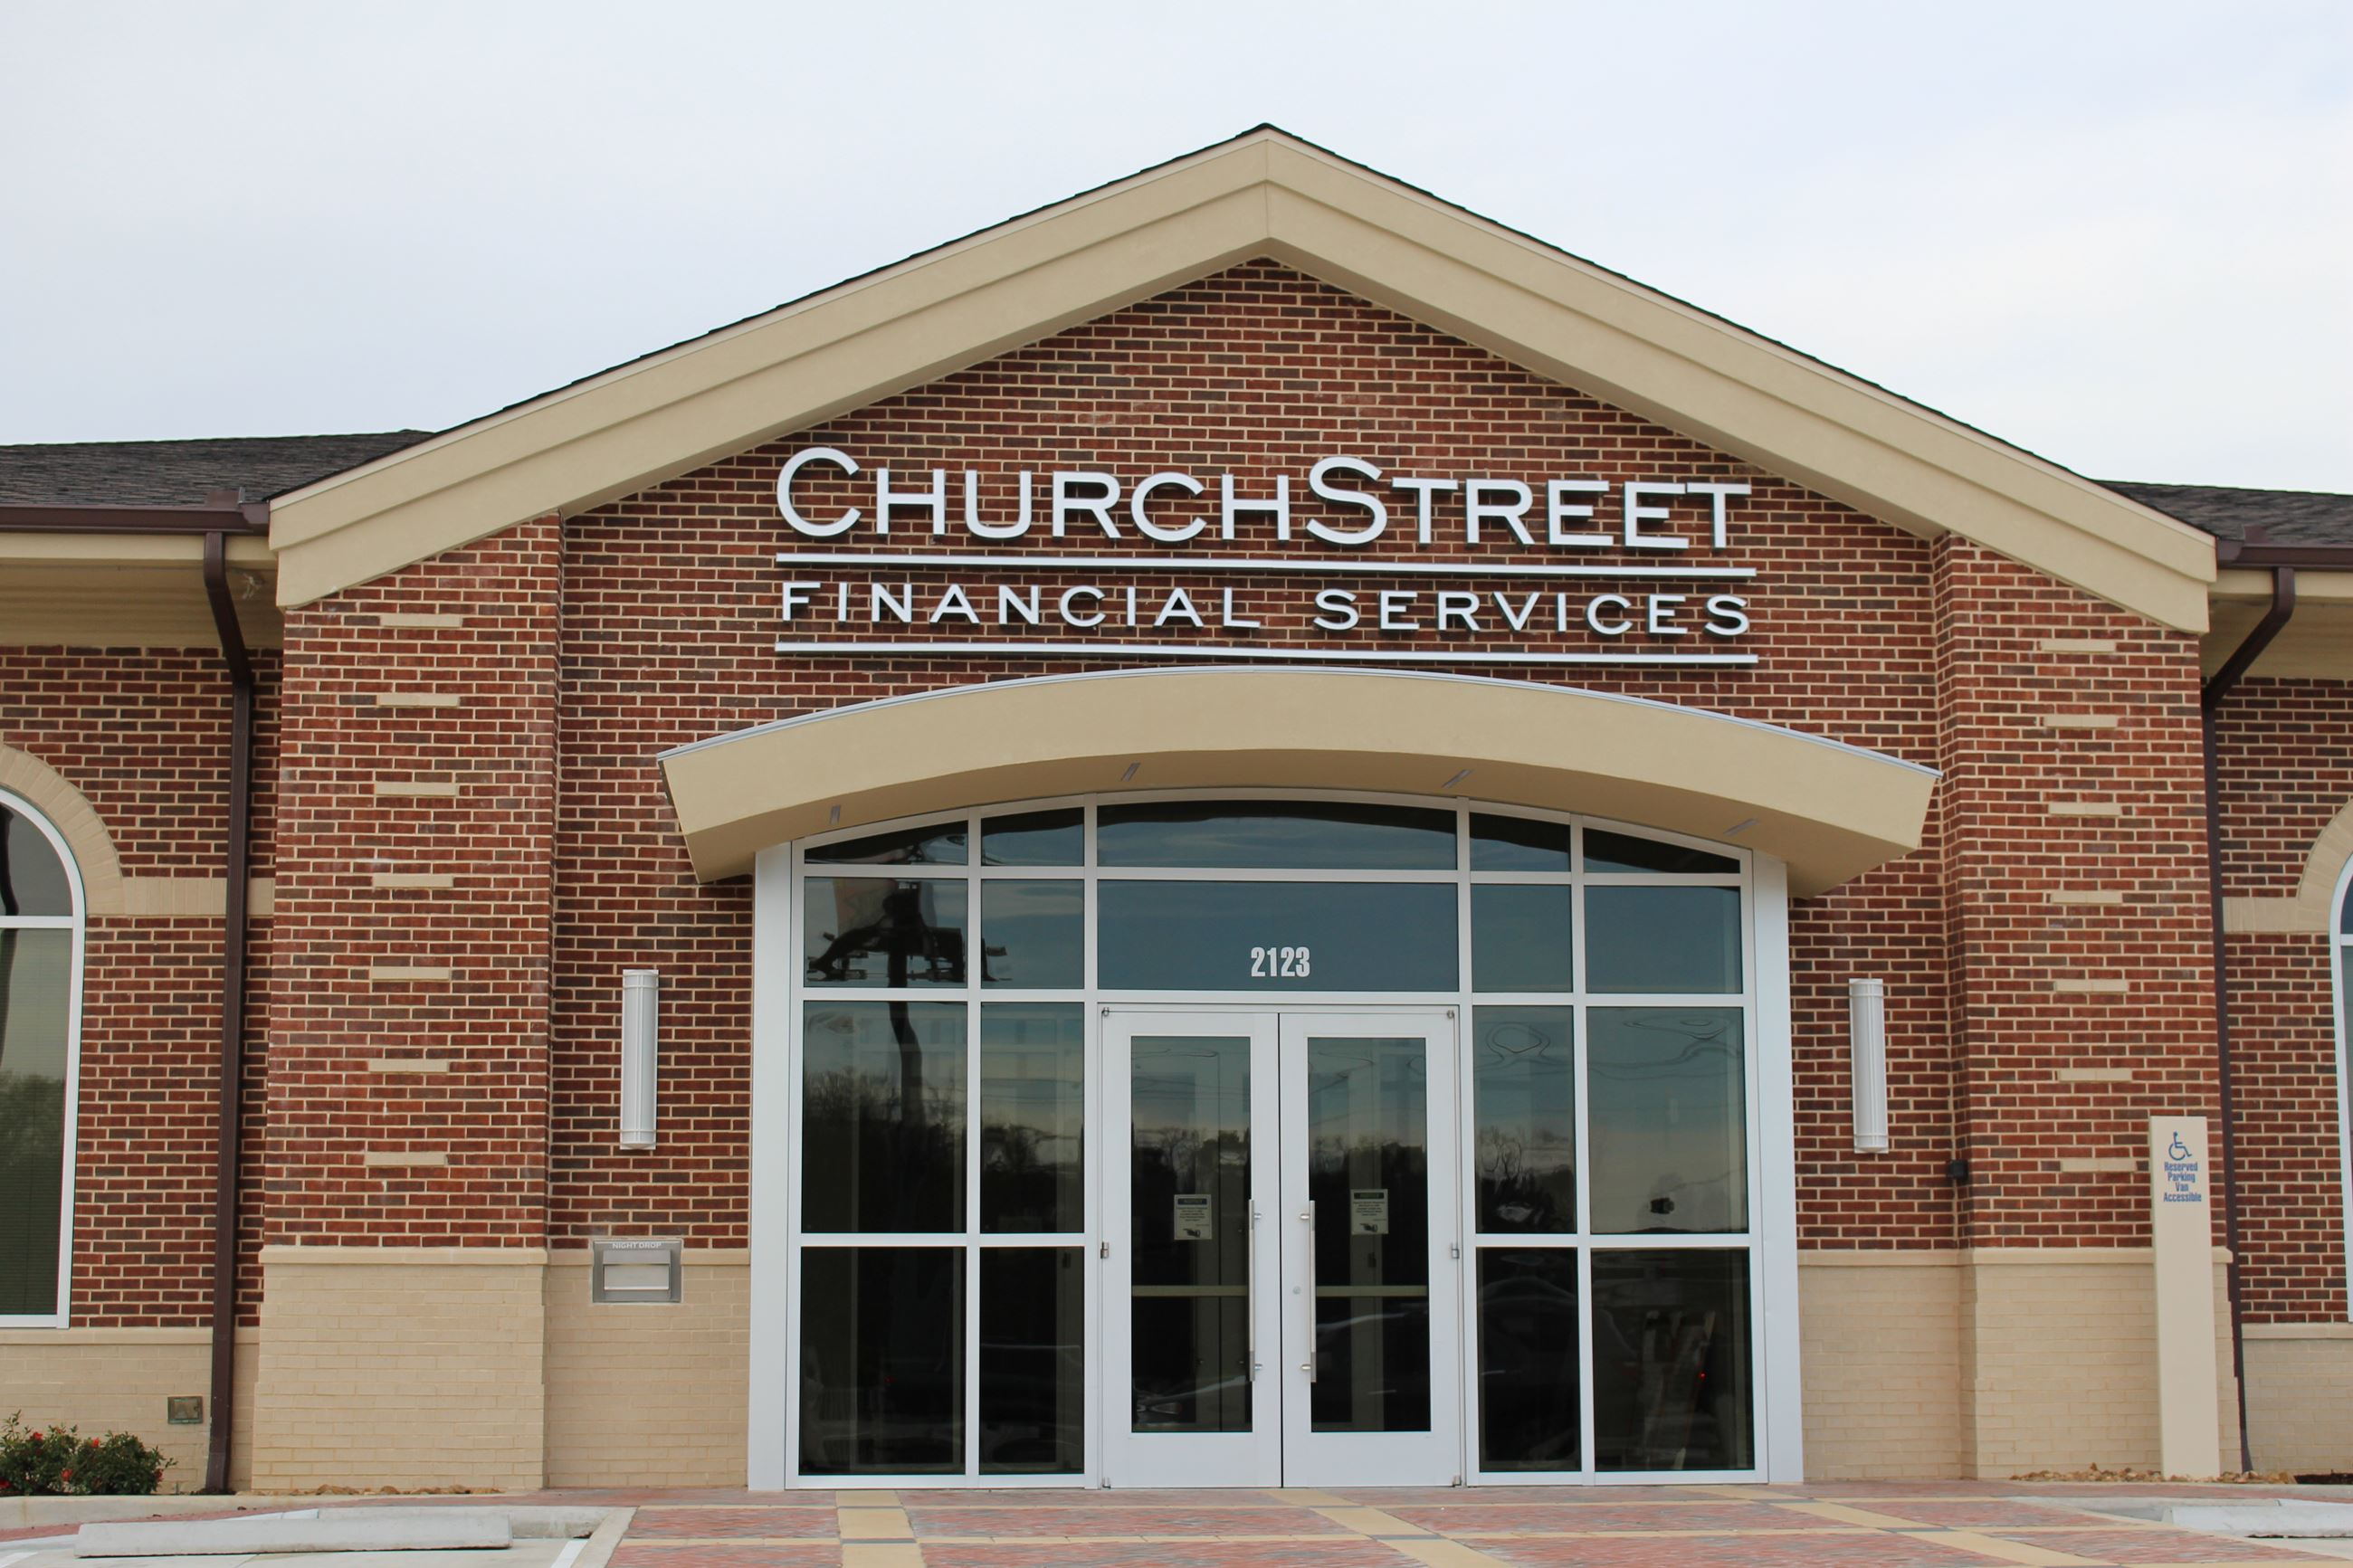 Church Street Financial